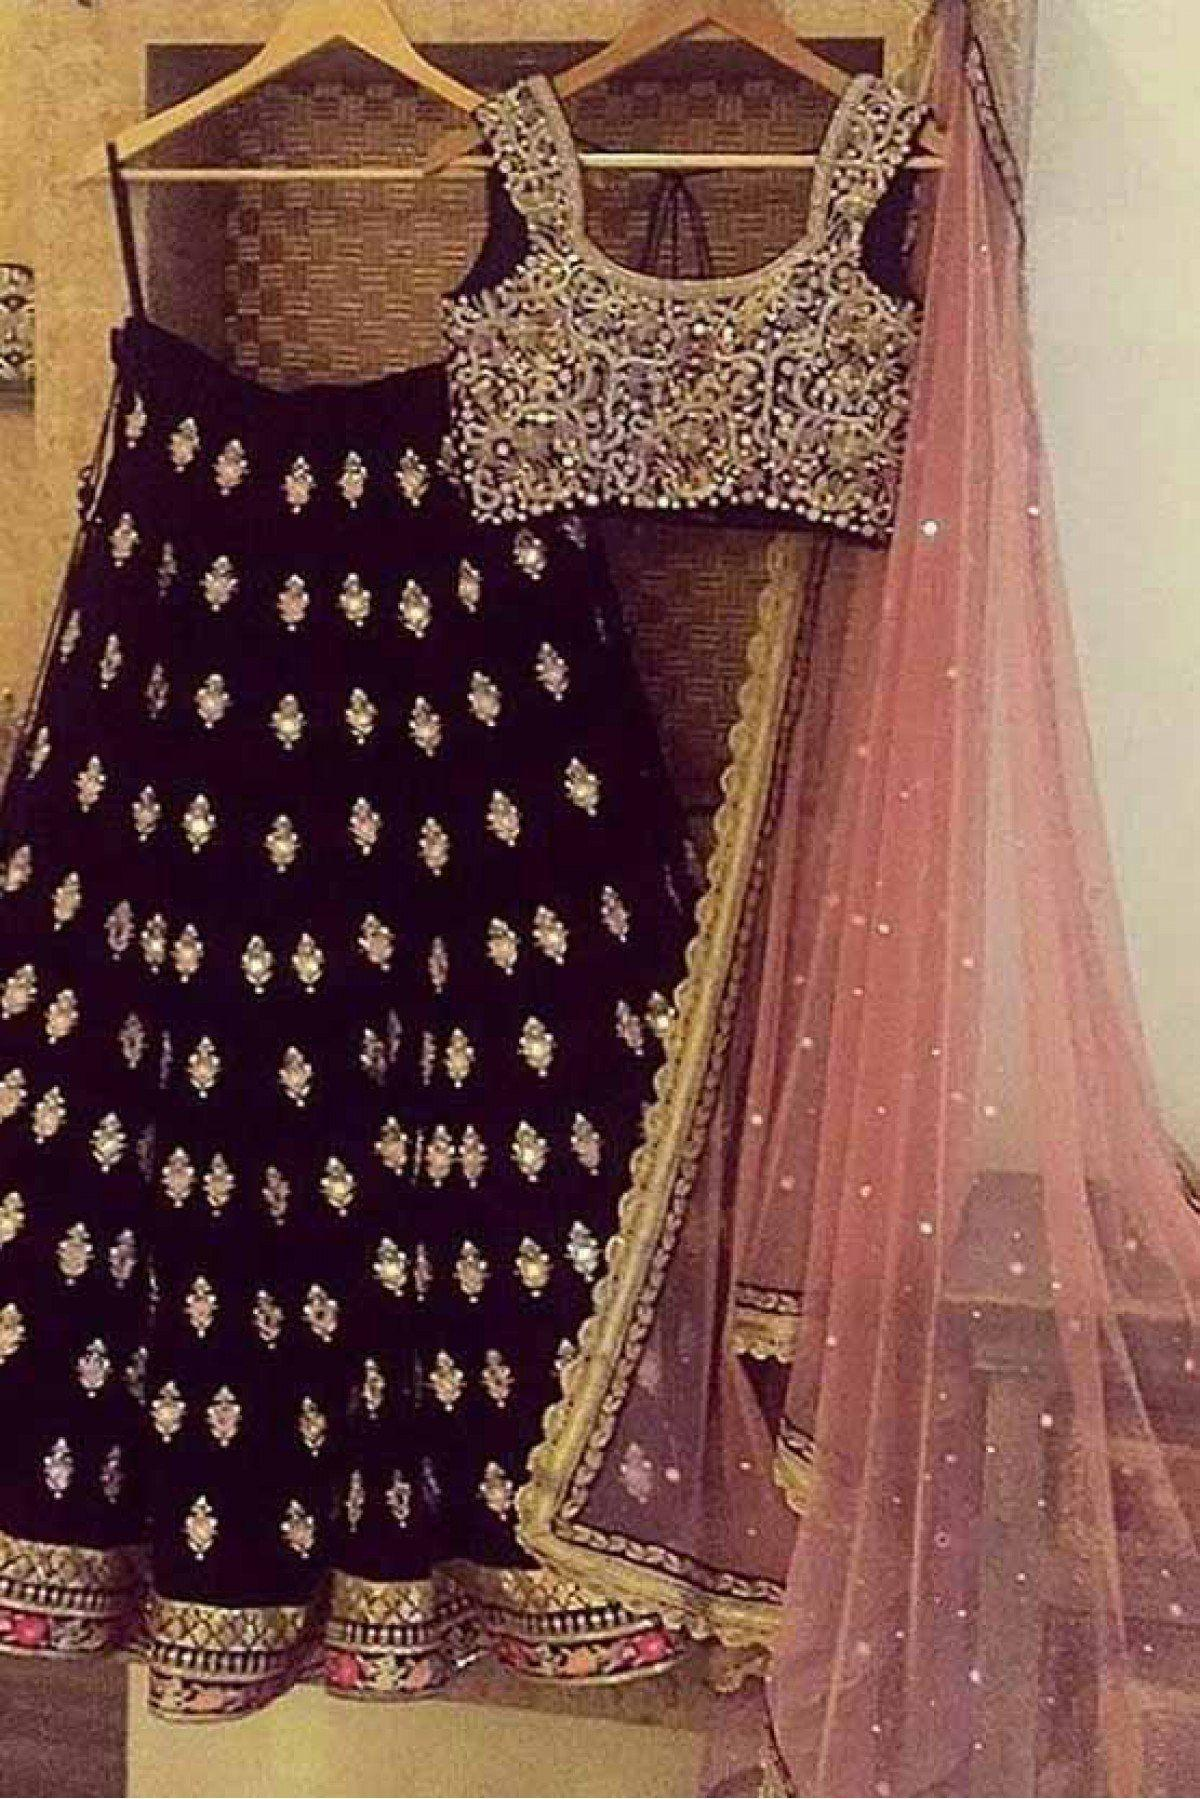 d5f610ab8e Stunning Maroon Colored Party Wear Banglory Silk Embroidered Lehenga Choli